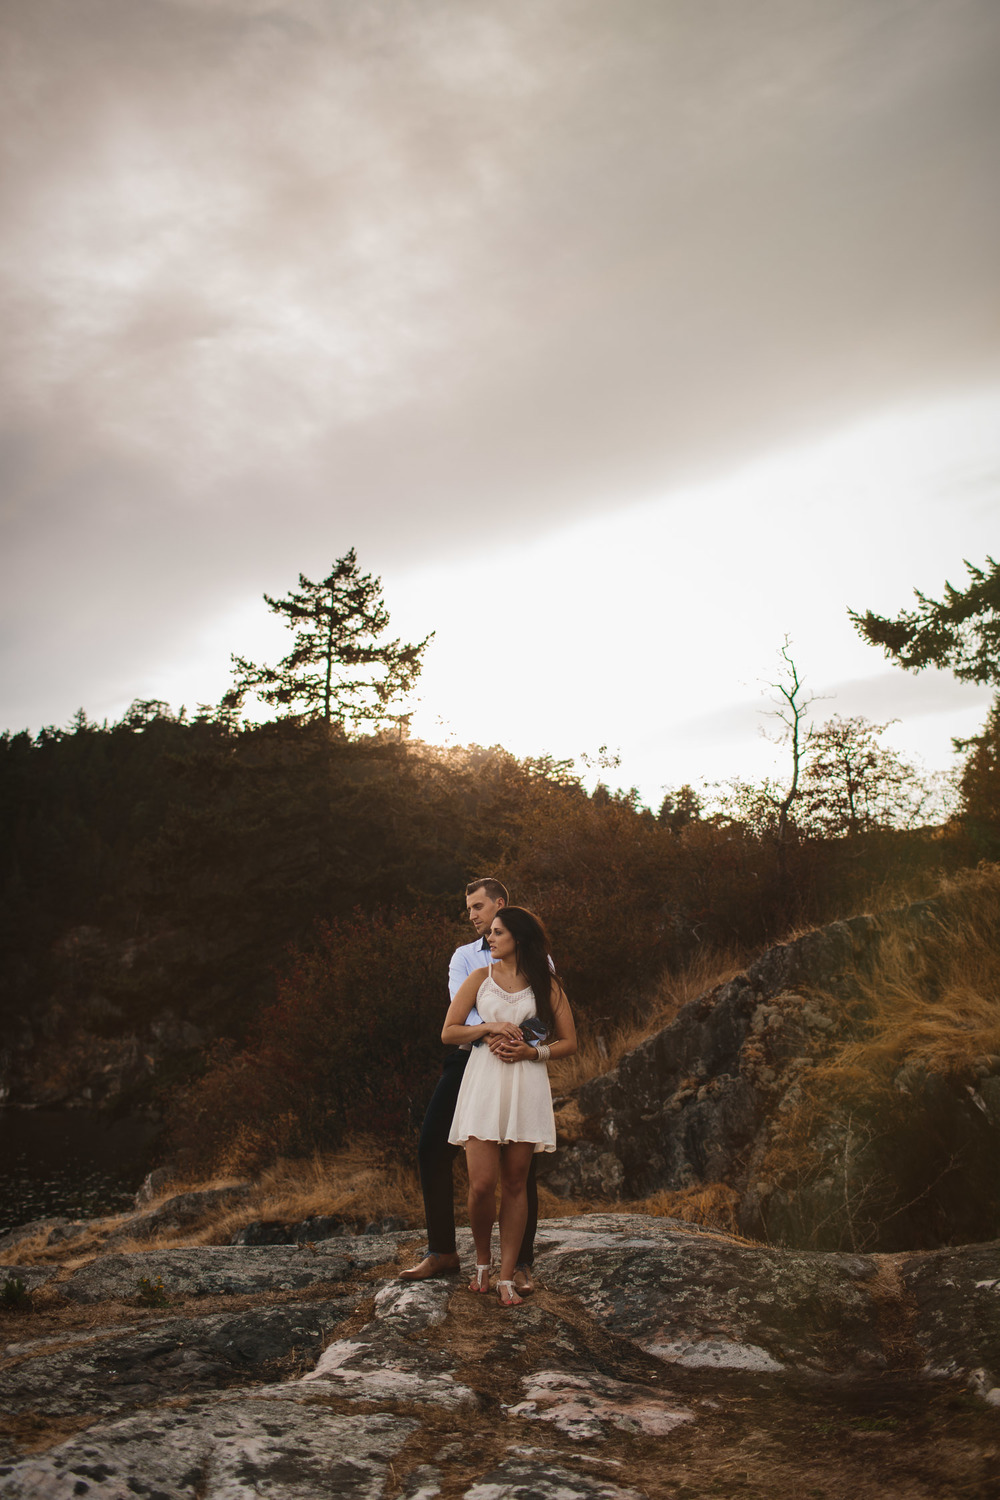 west vancouver caulfield park engagement photography